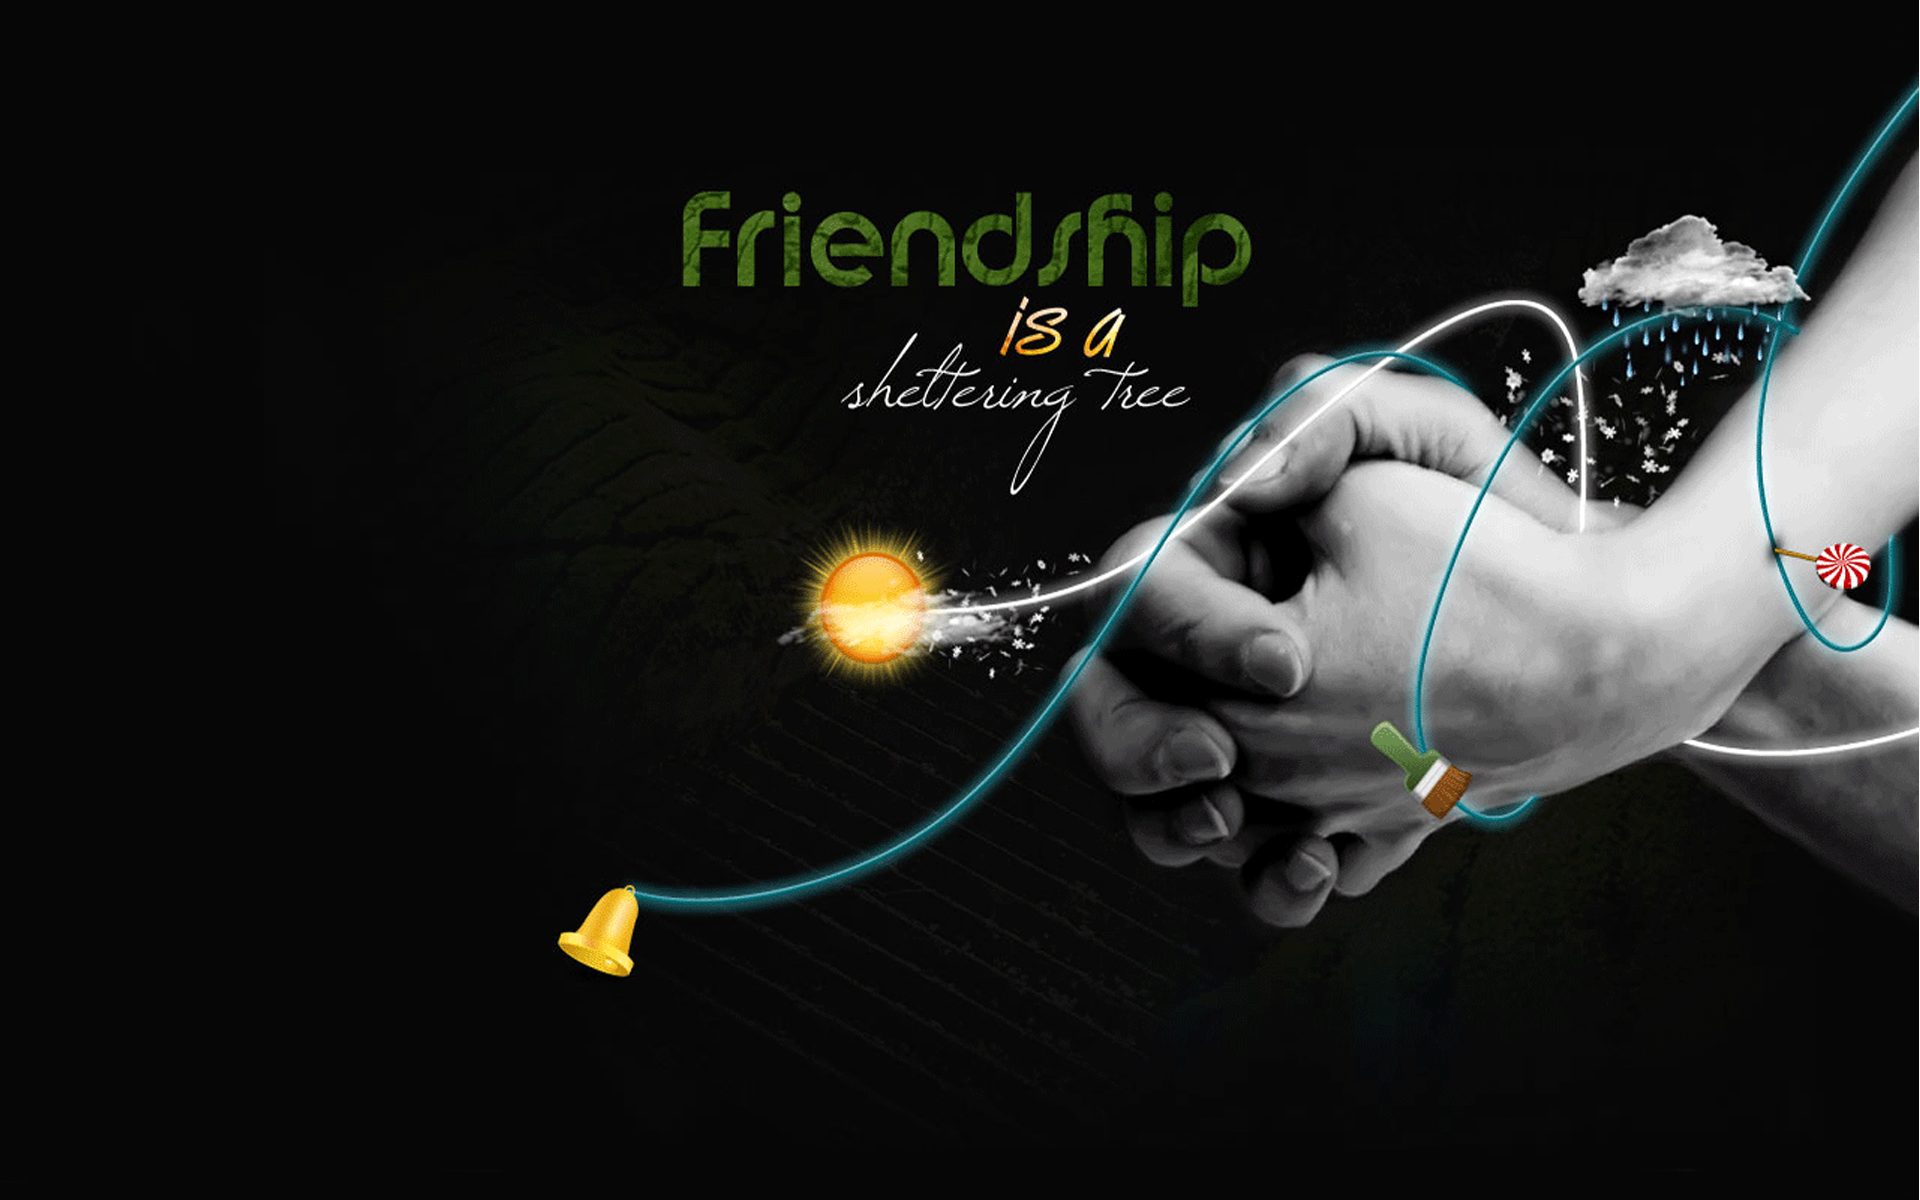 Friendship-Day-2015-Wallpapers free